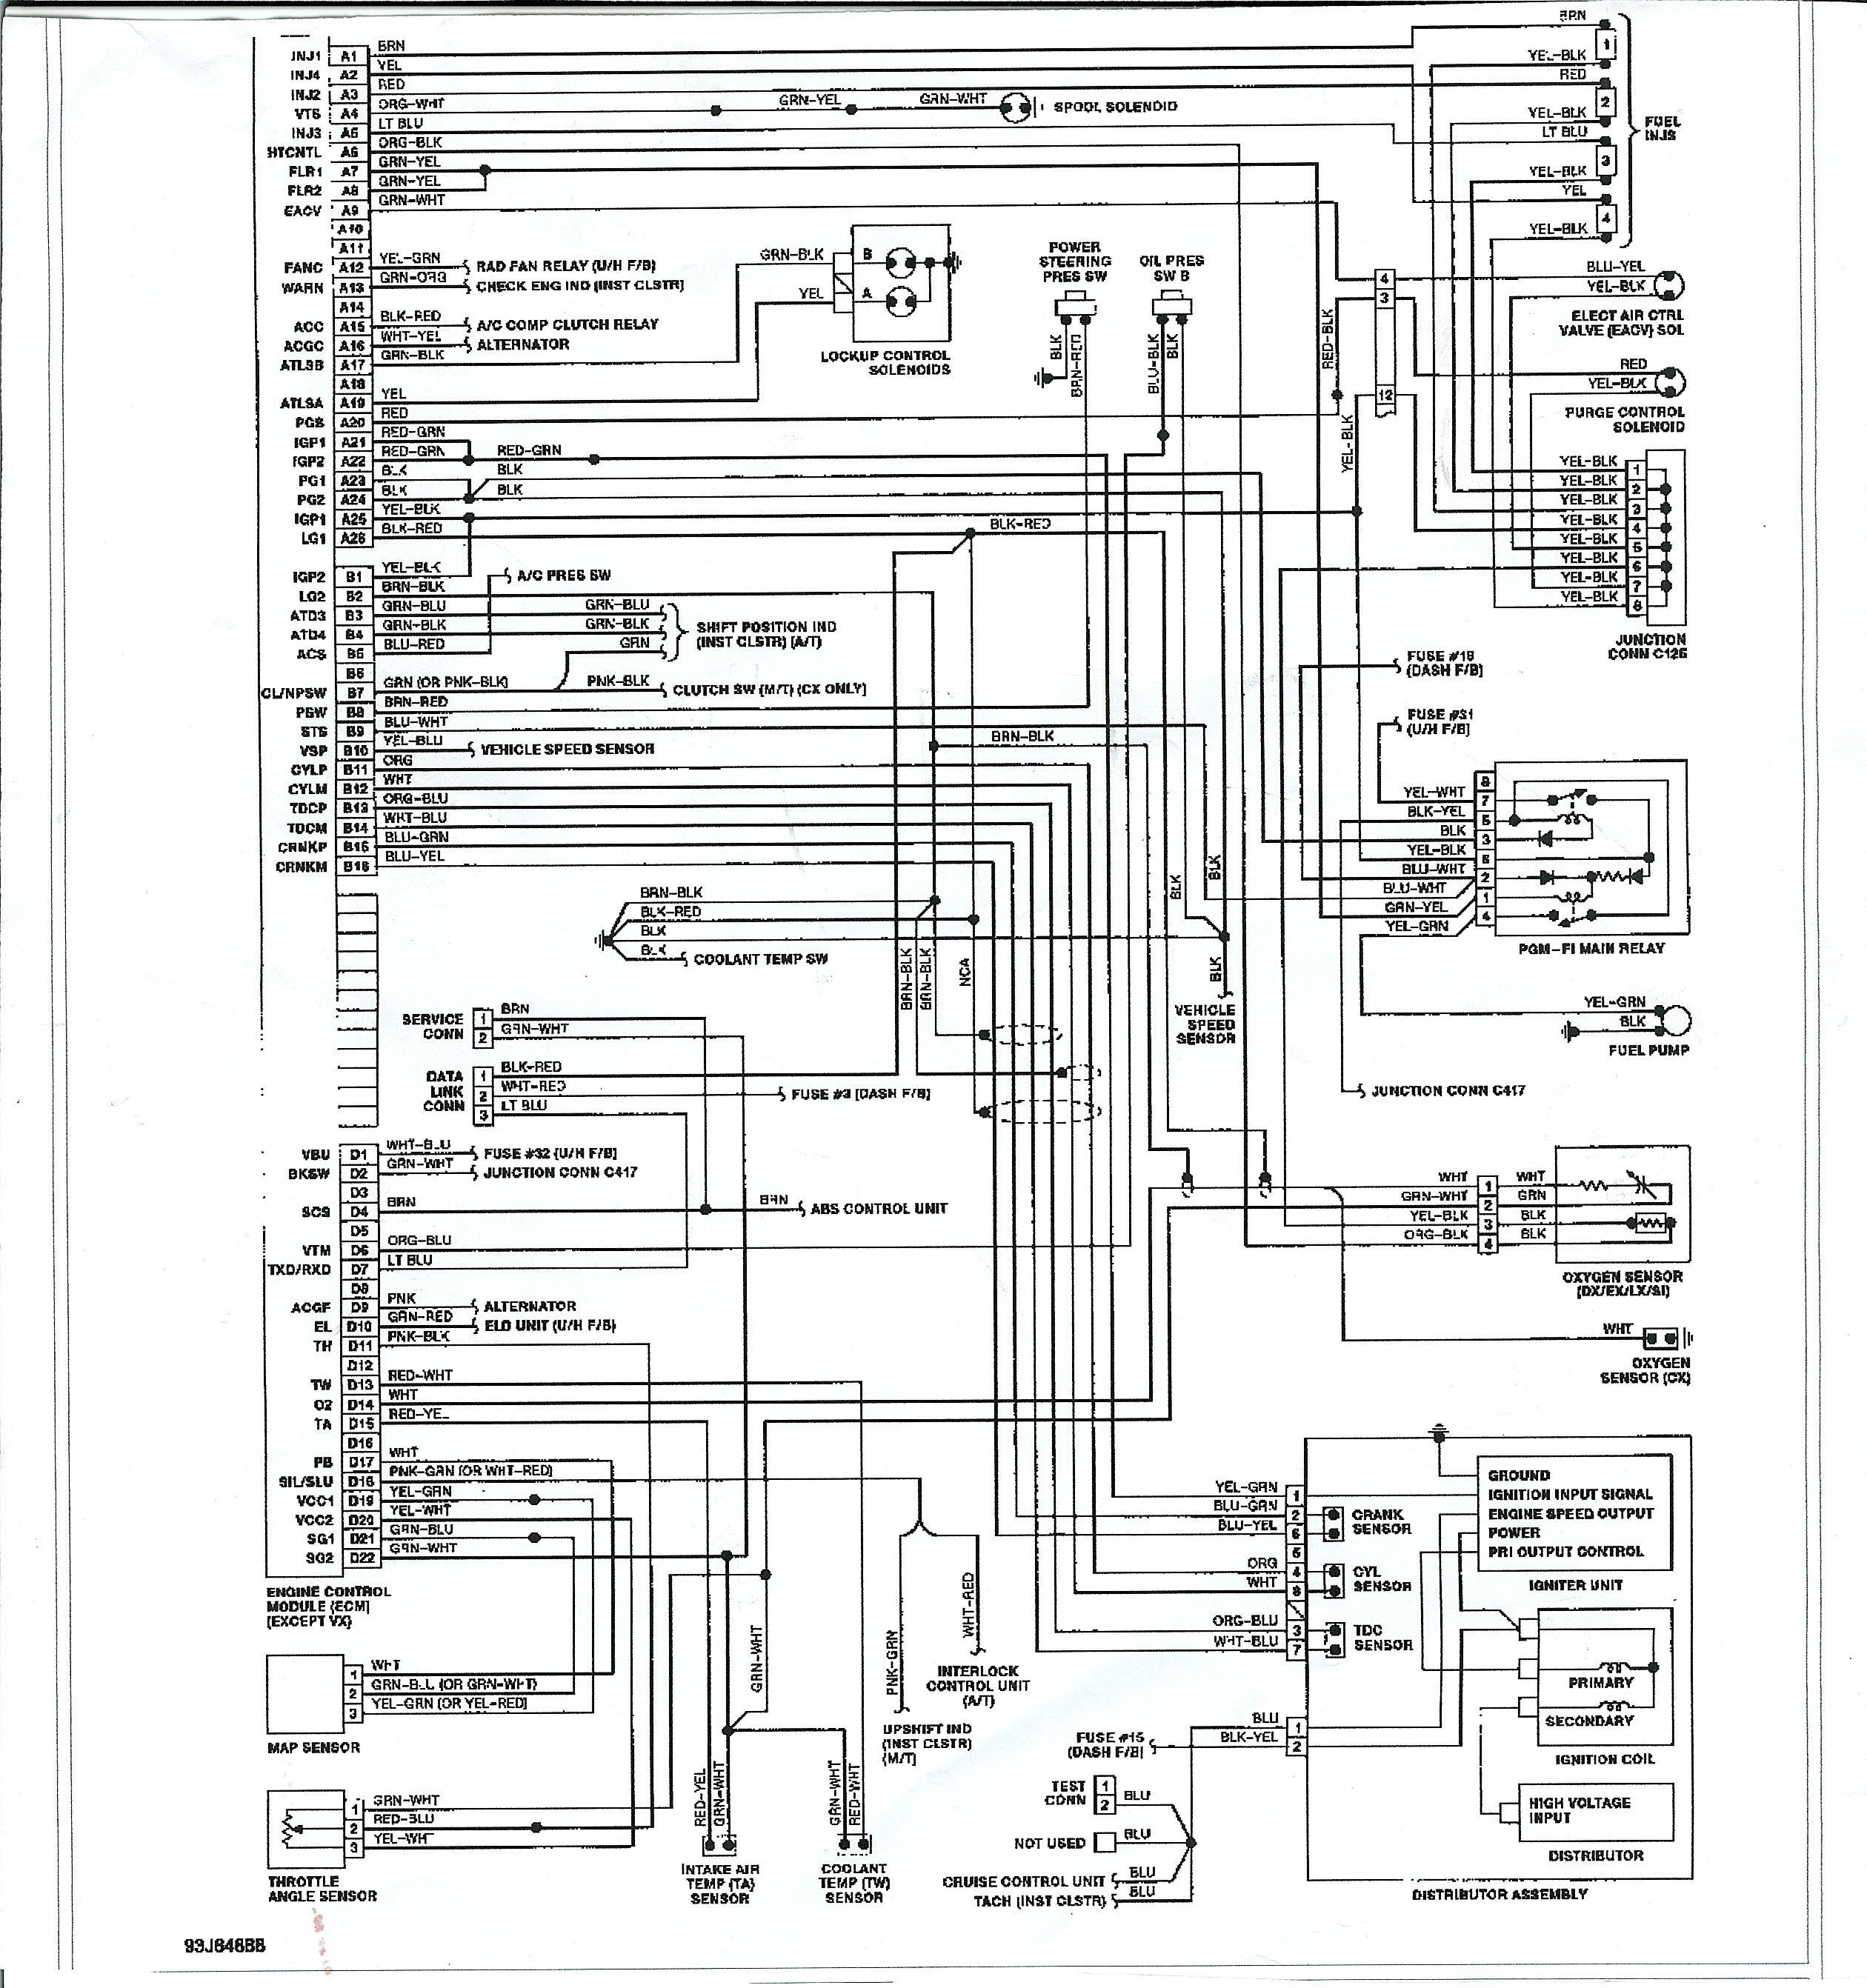 2001 Honda Accord Engine Diagram My Wiring Diagram